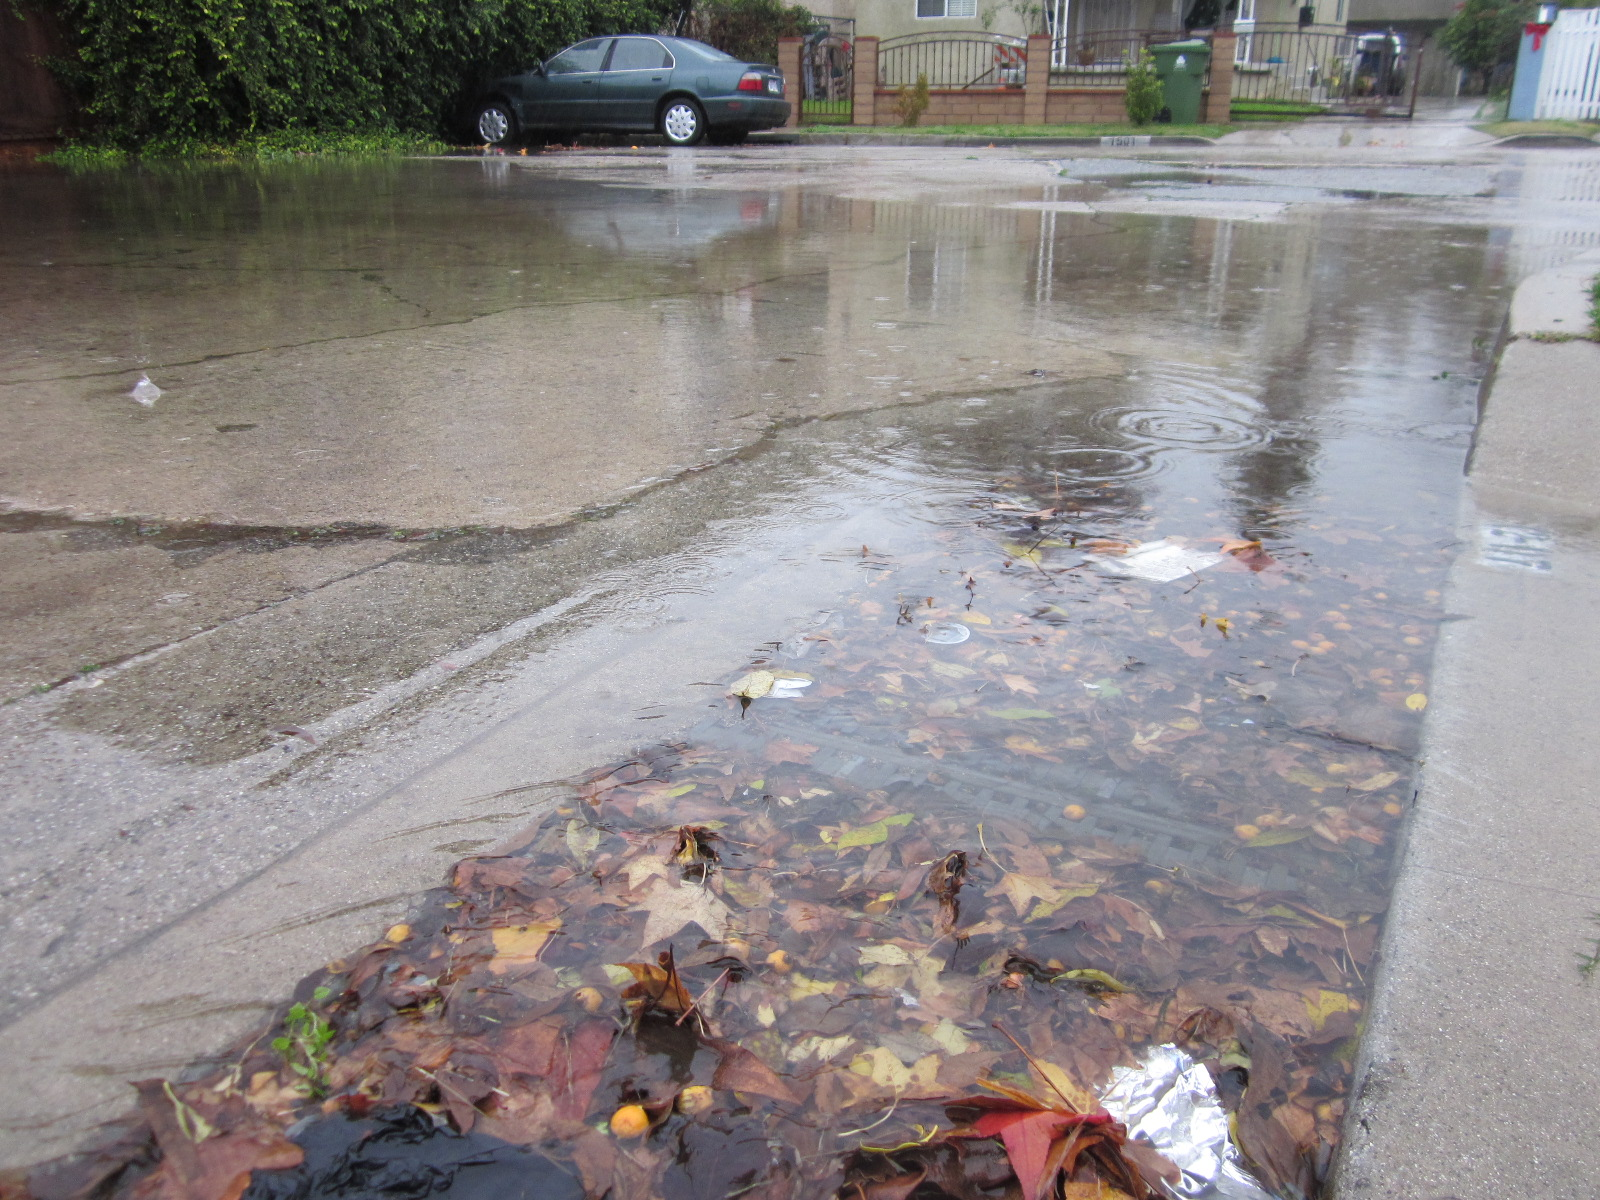 Flooded storm drain